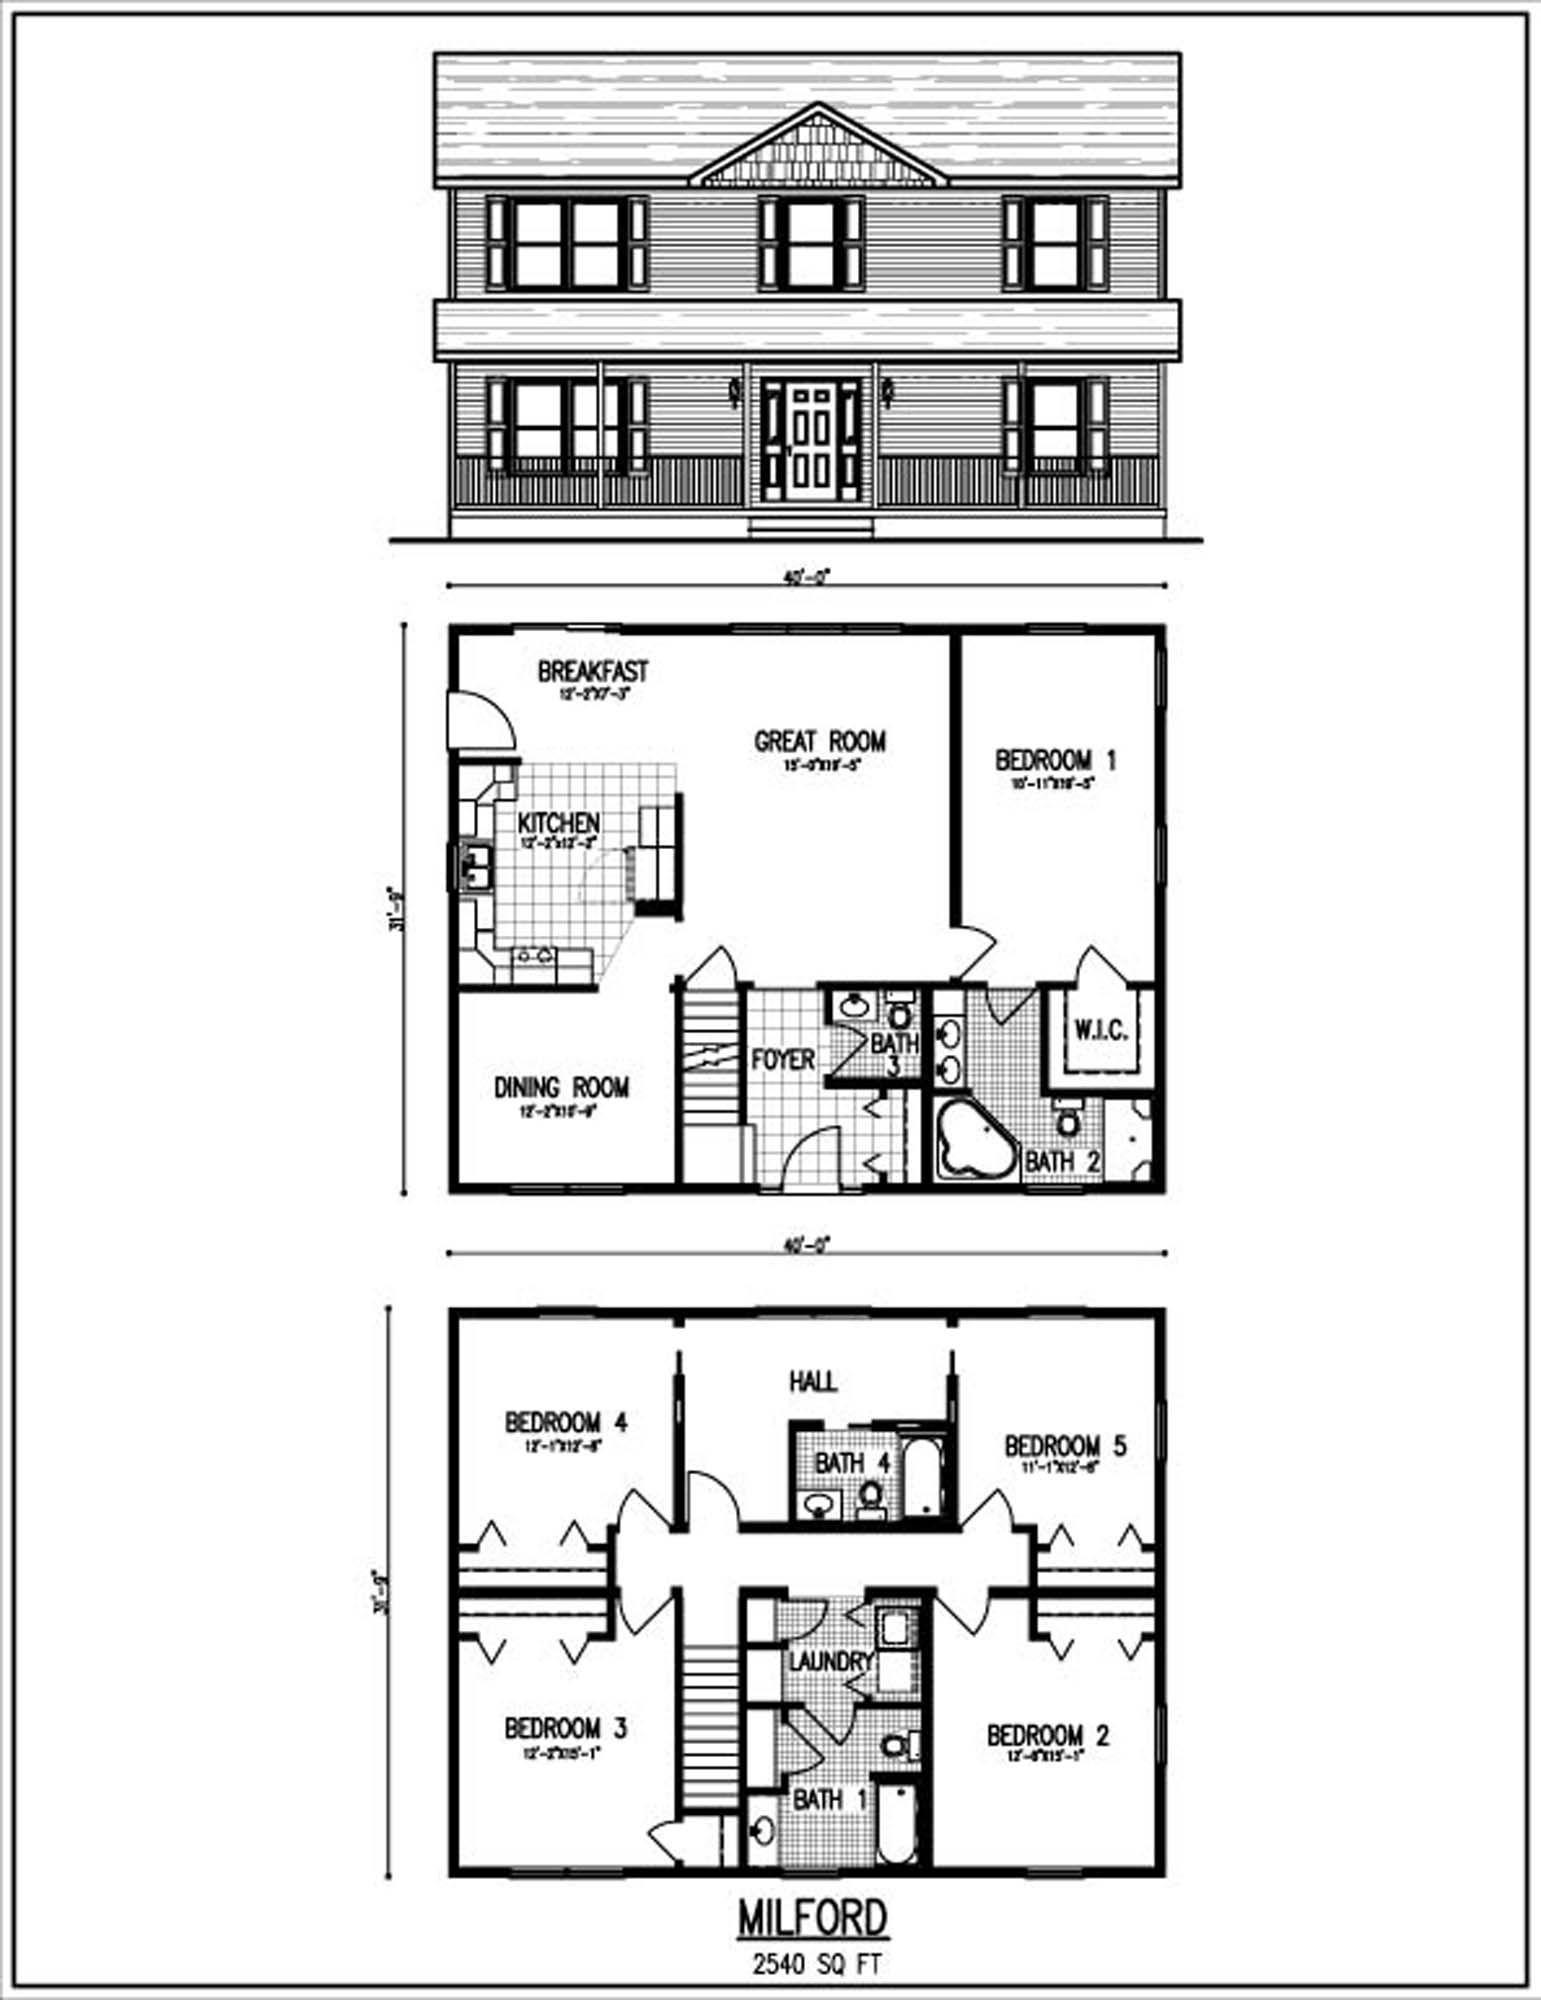 Beautiful 2 story house plans with upper level floor plan 2 story home designs